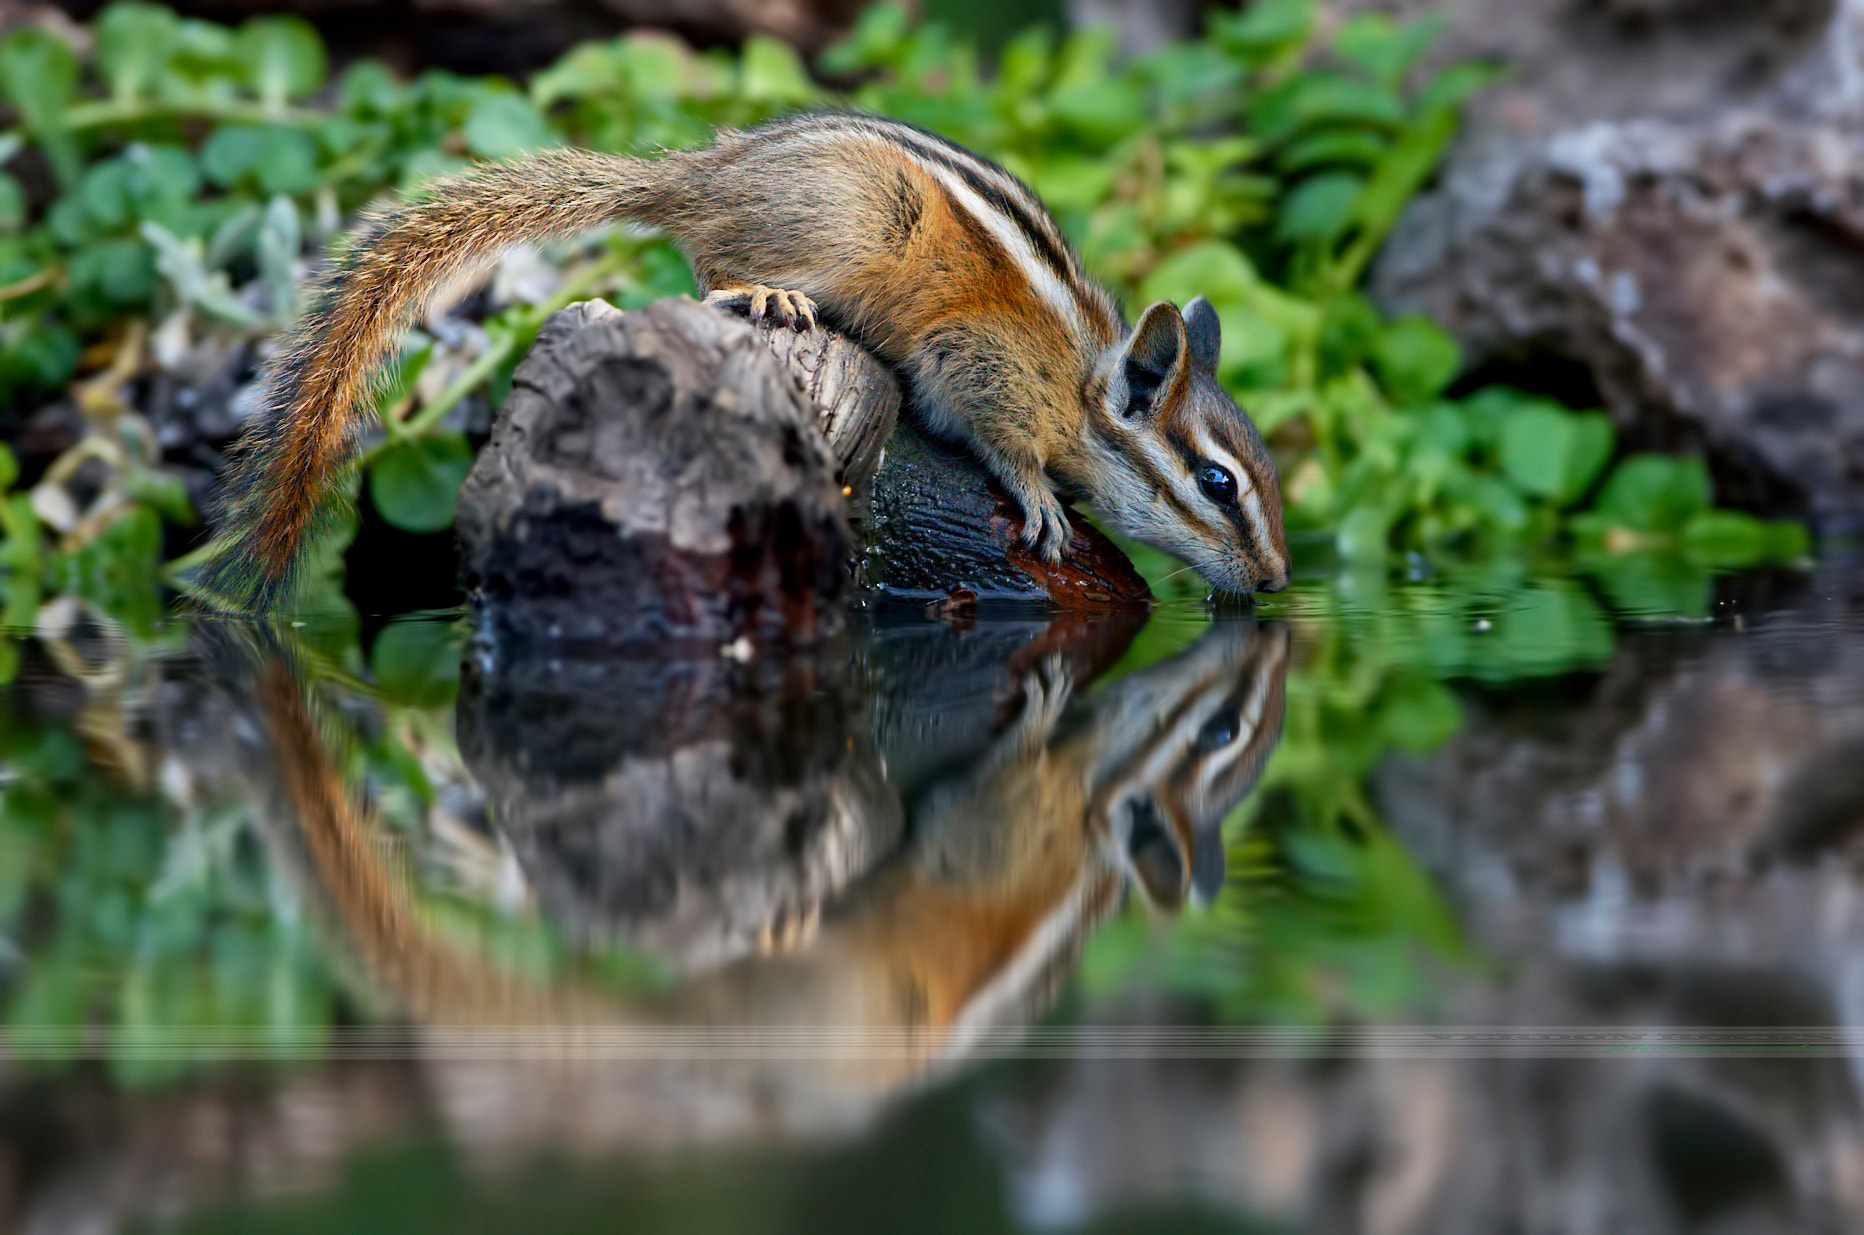 Photograph Circle of chipmunk by VERDON ROCKS on 500px